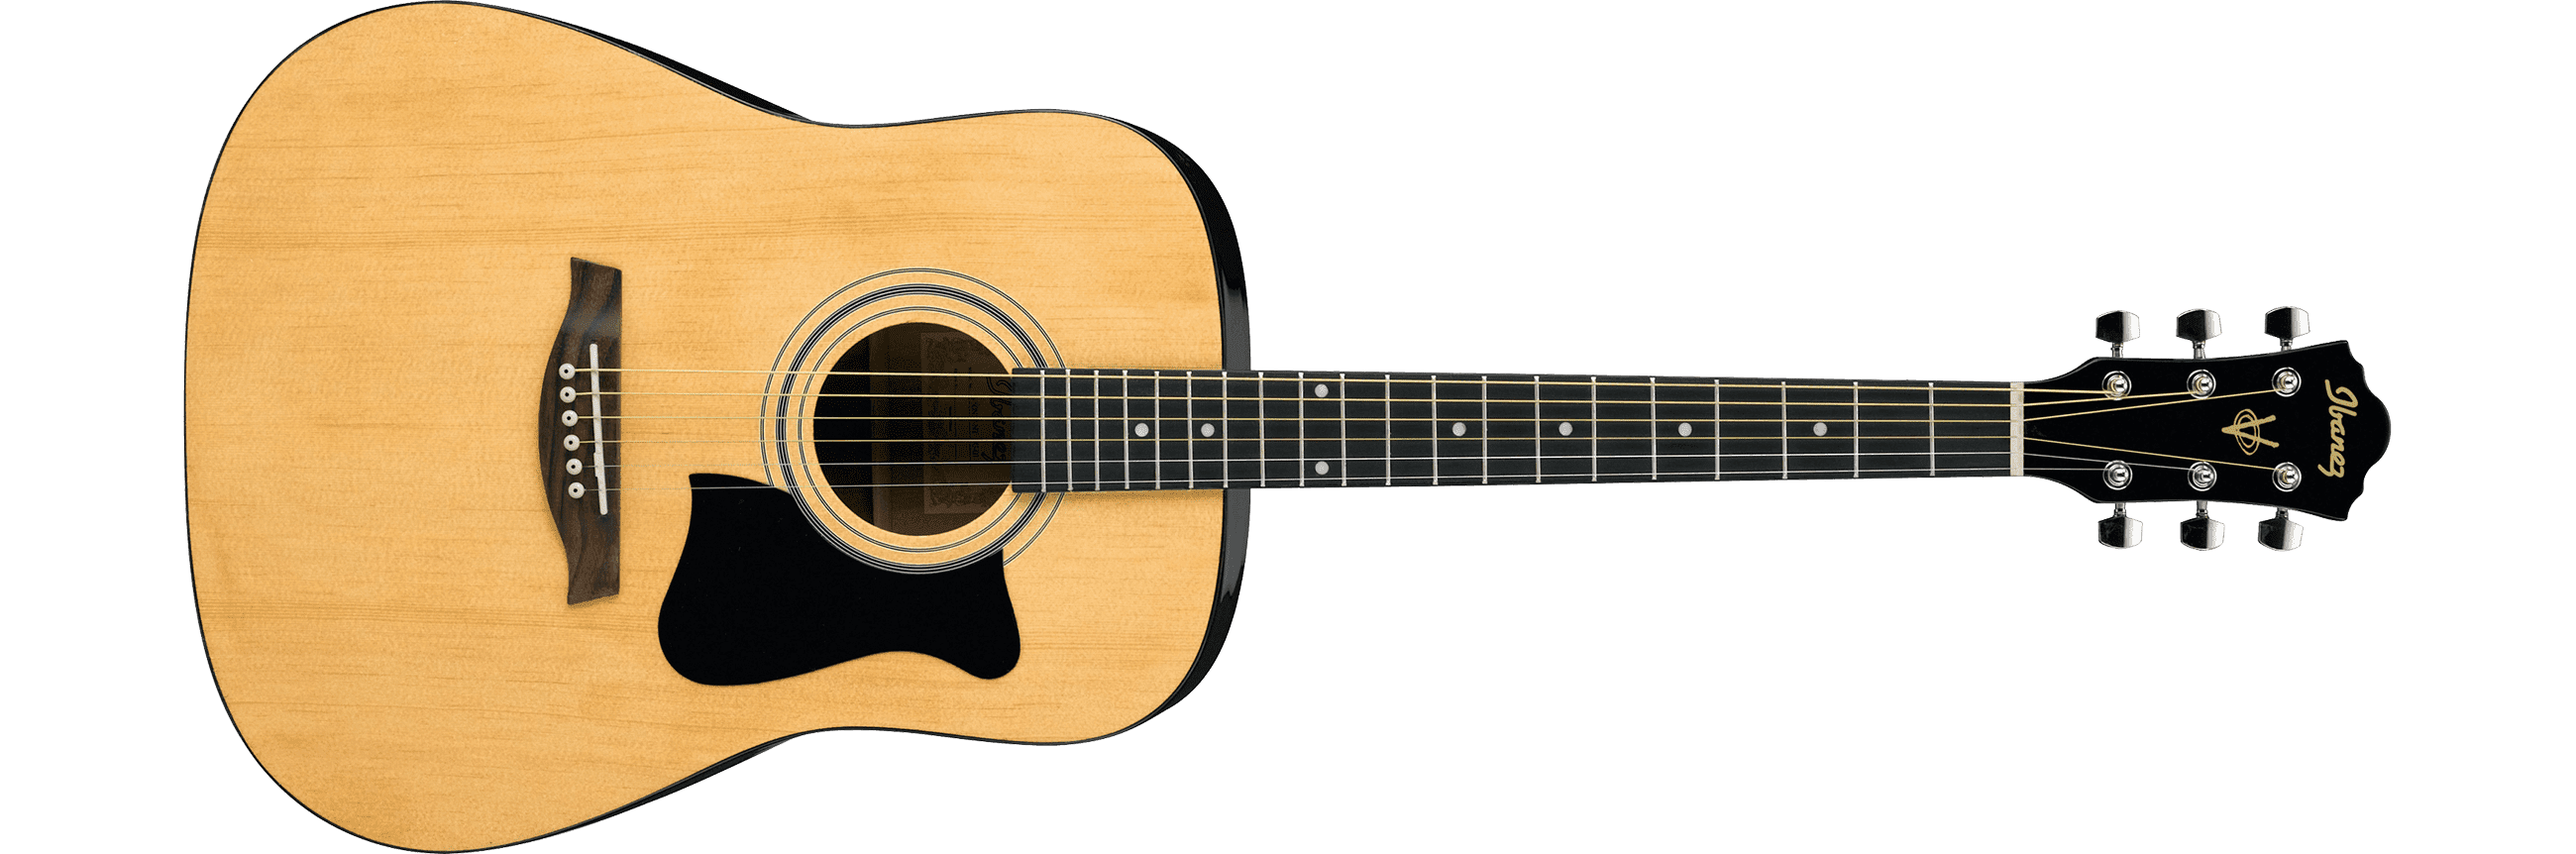 V50NJP | JAMPACK | ACOUSTIC GUITARS | PRODUCTS | Ibanez guitars